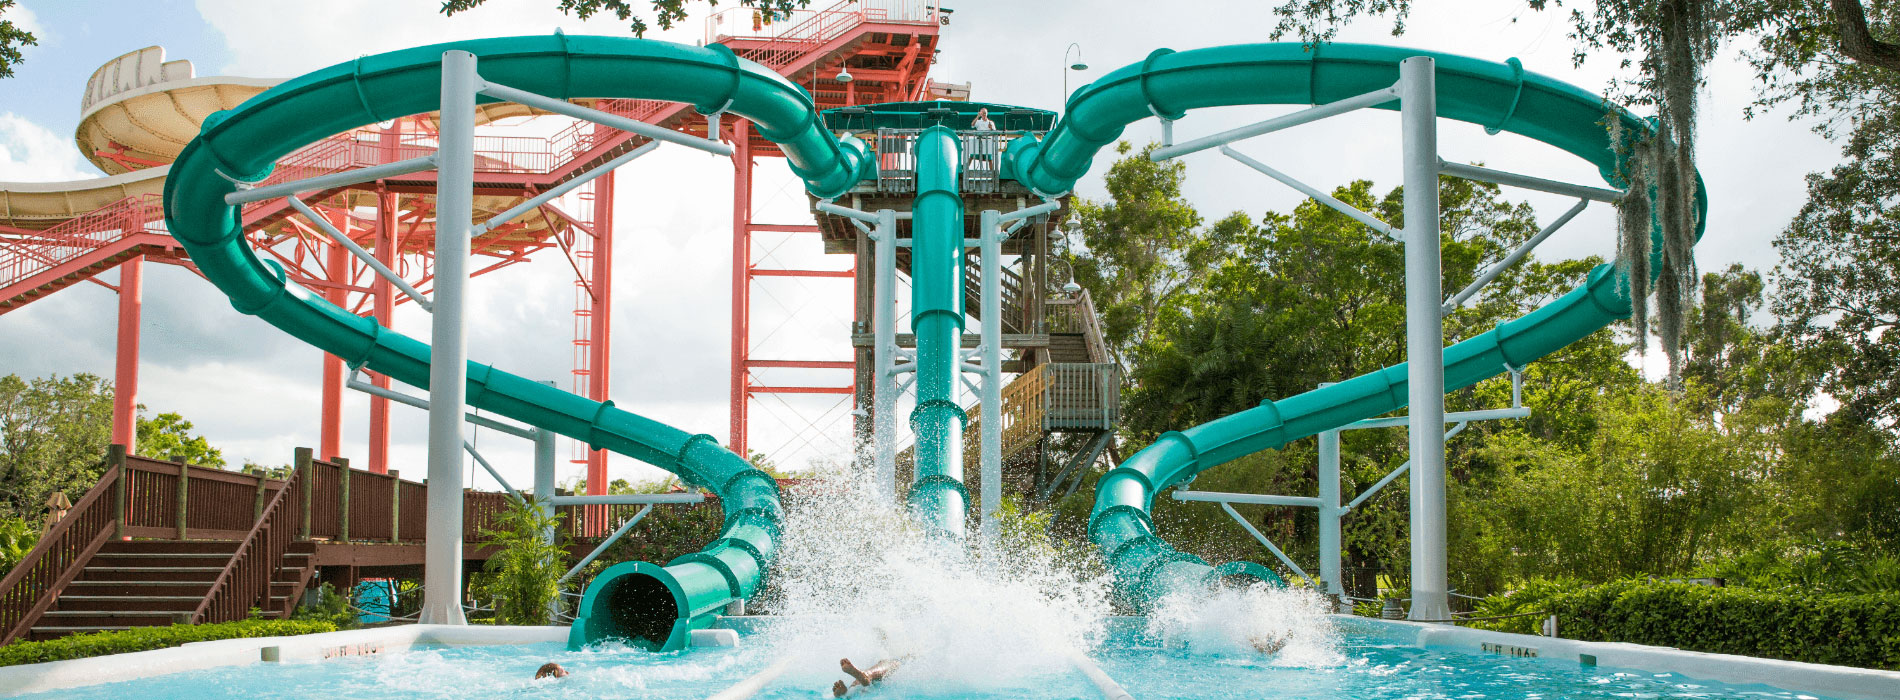 Water Moccosan Water Slide